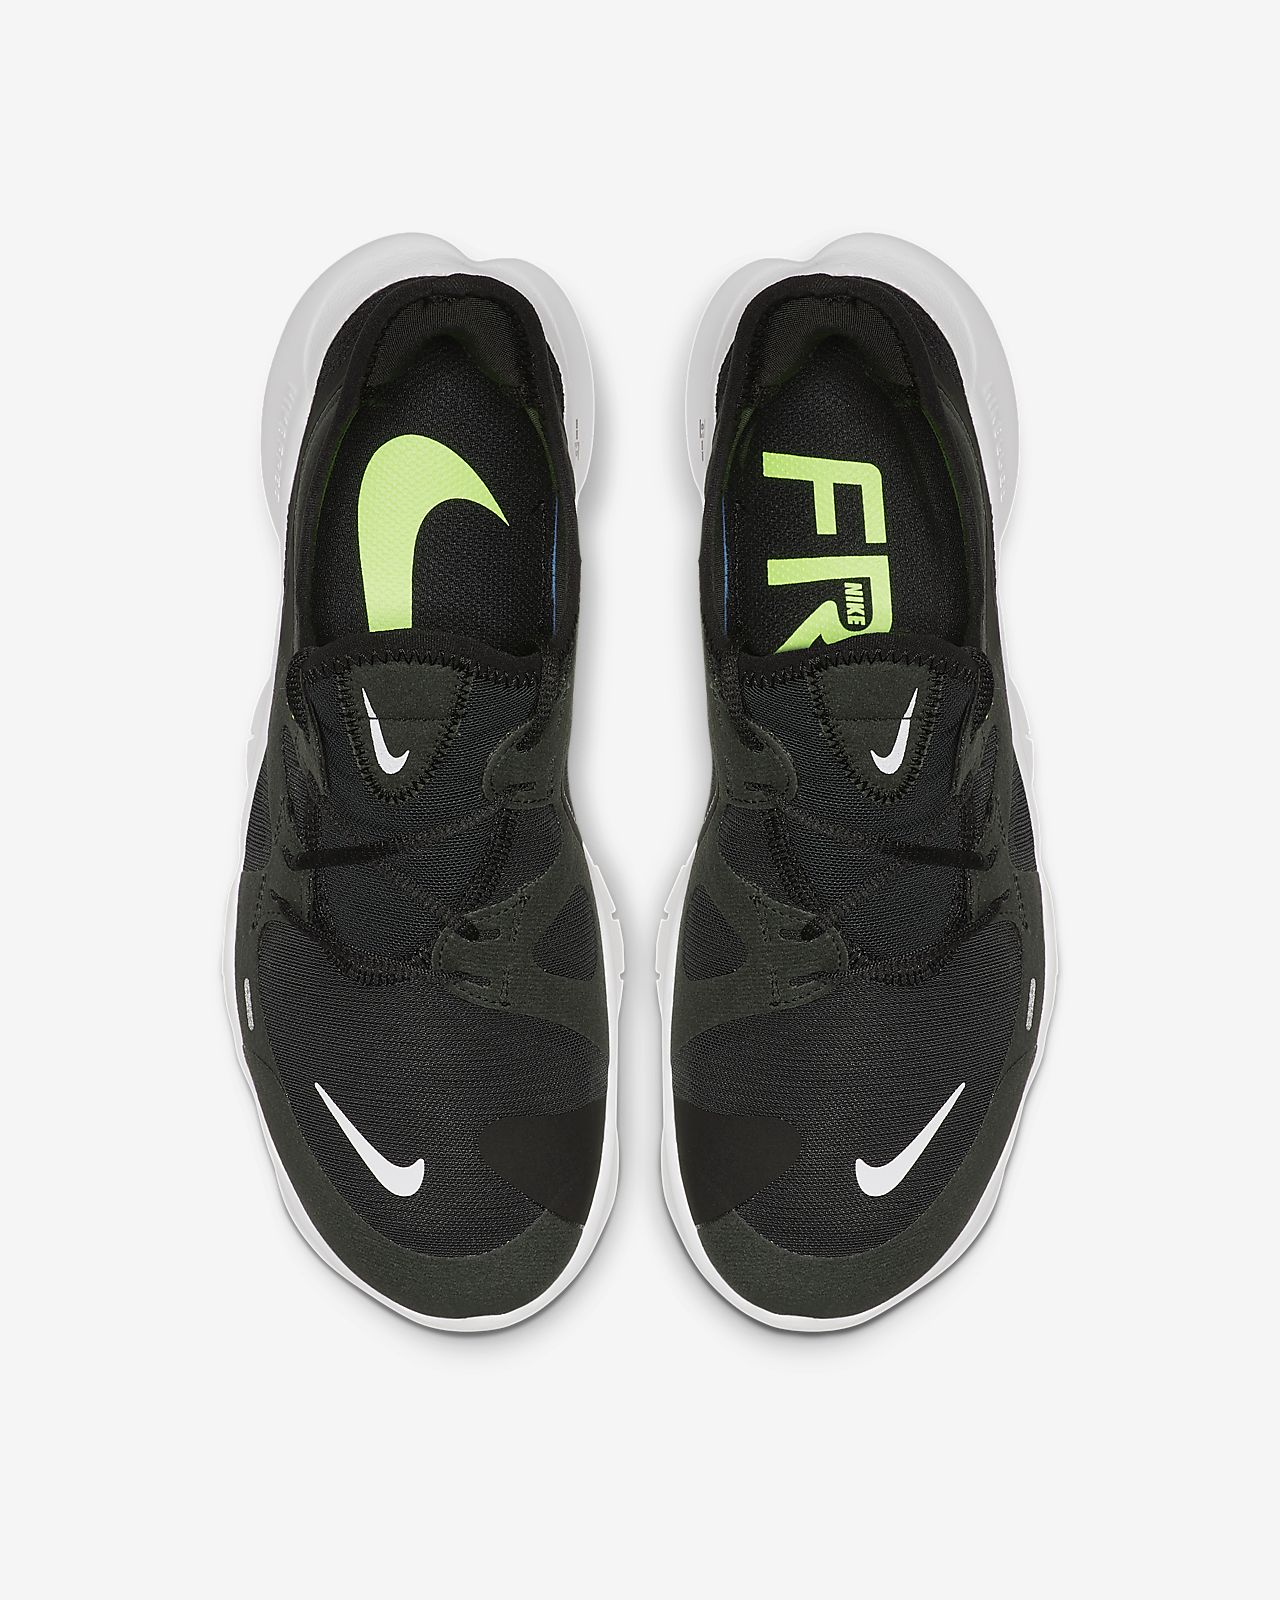 best sneakers a95ce fac39 ... Chaussure de running Nike Free RN 5.0 pour Femme